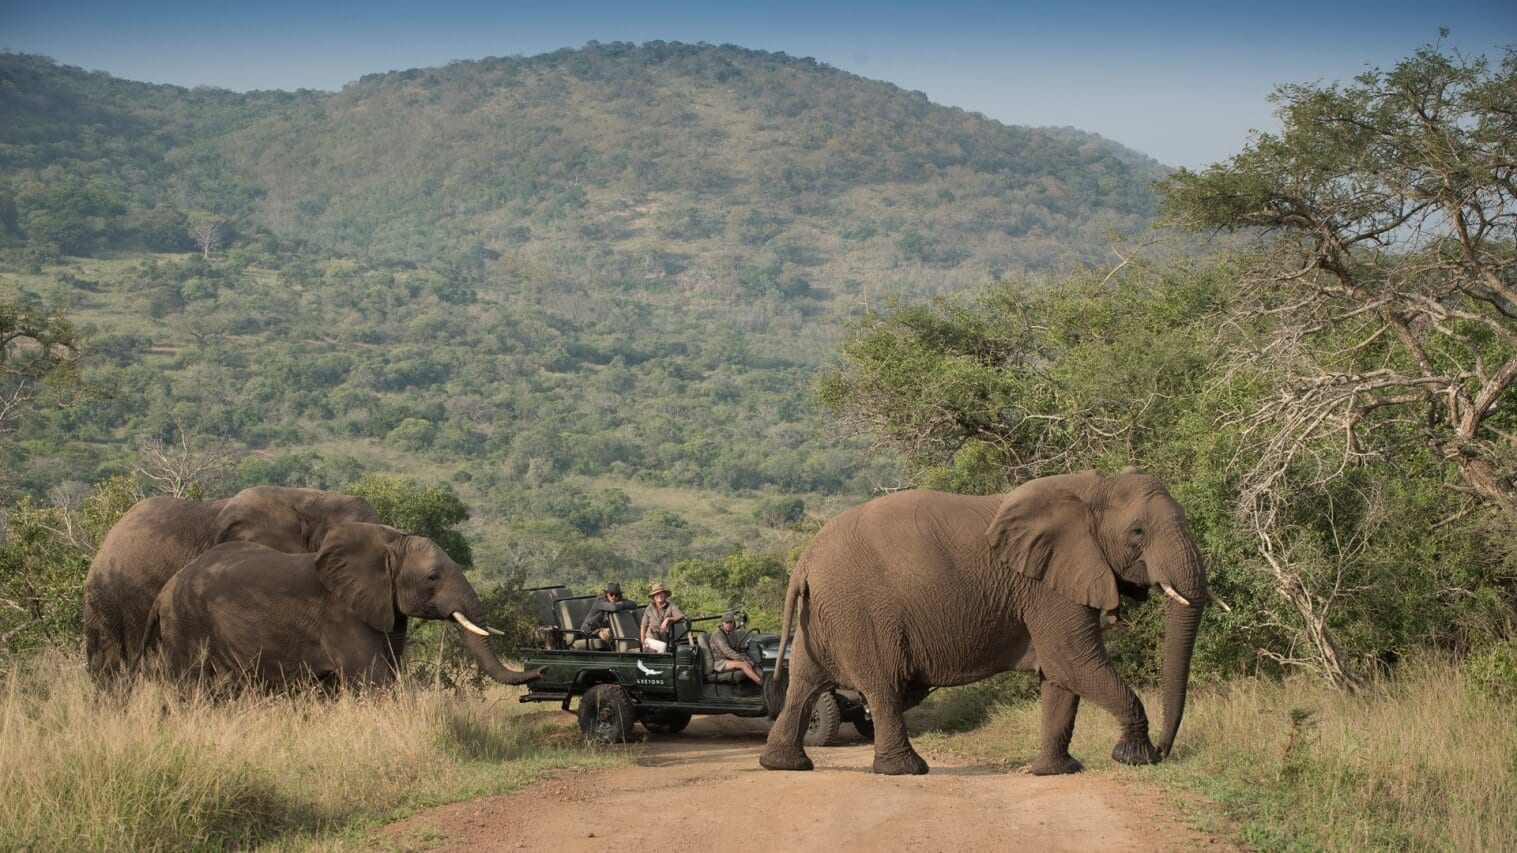 Elephants - A highlight at Phinda Vlei Lodge